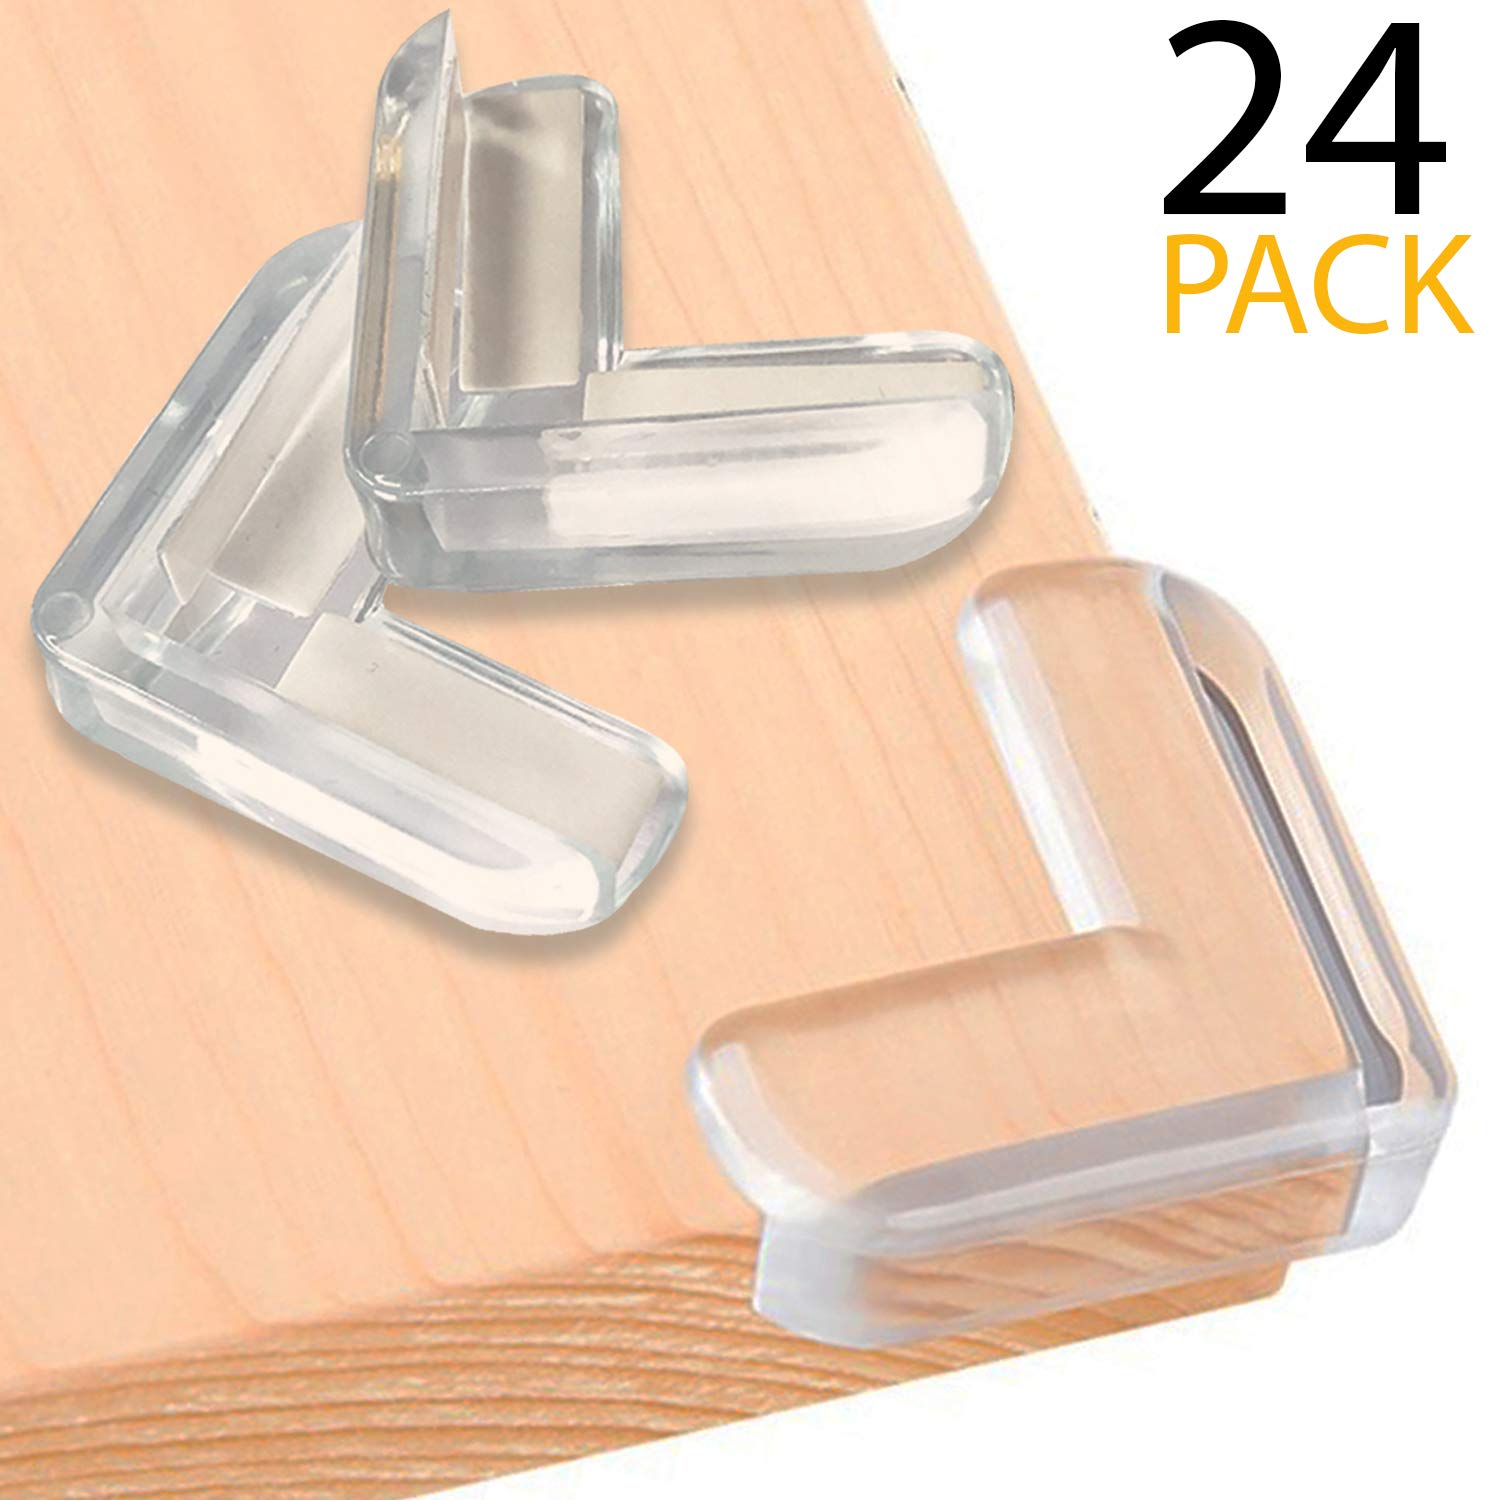  24 Pack  Clear Corner Protector  Baby Proofing   Impact Absorbent Furniture Corner Guards  Baby Safety Sharp Table Corner Protector  High Resistant Adhesive   SurBaby